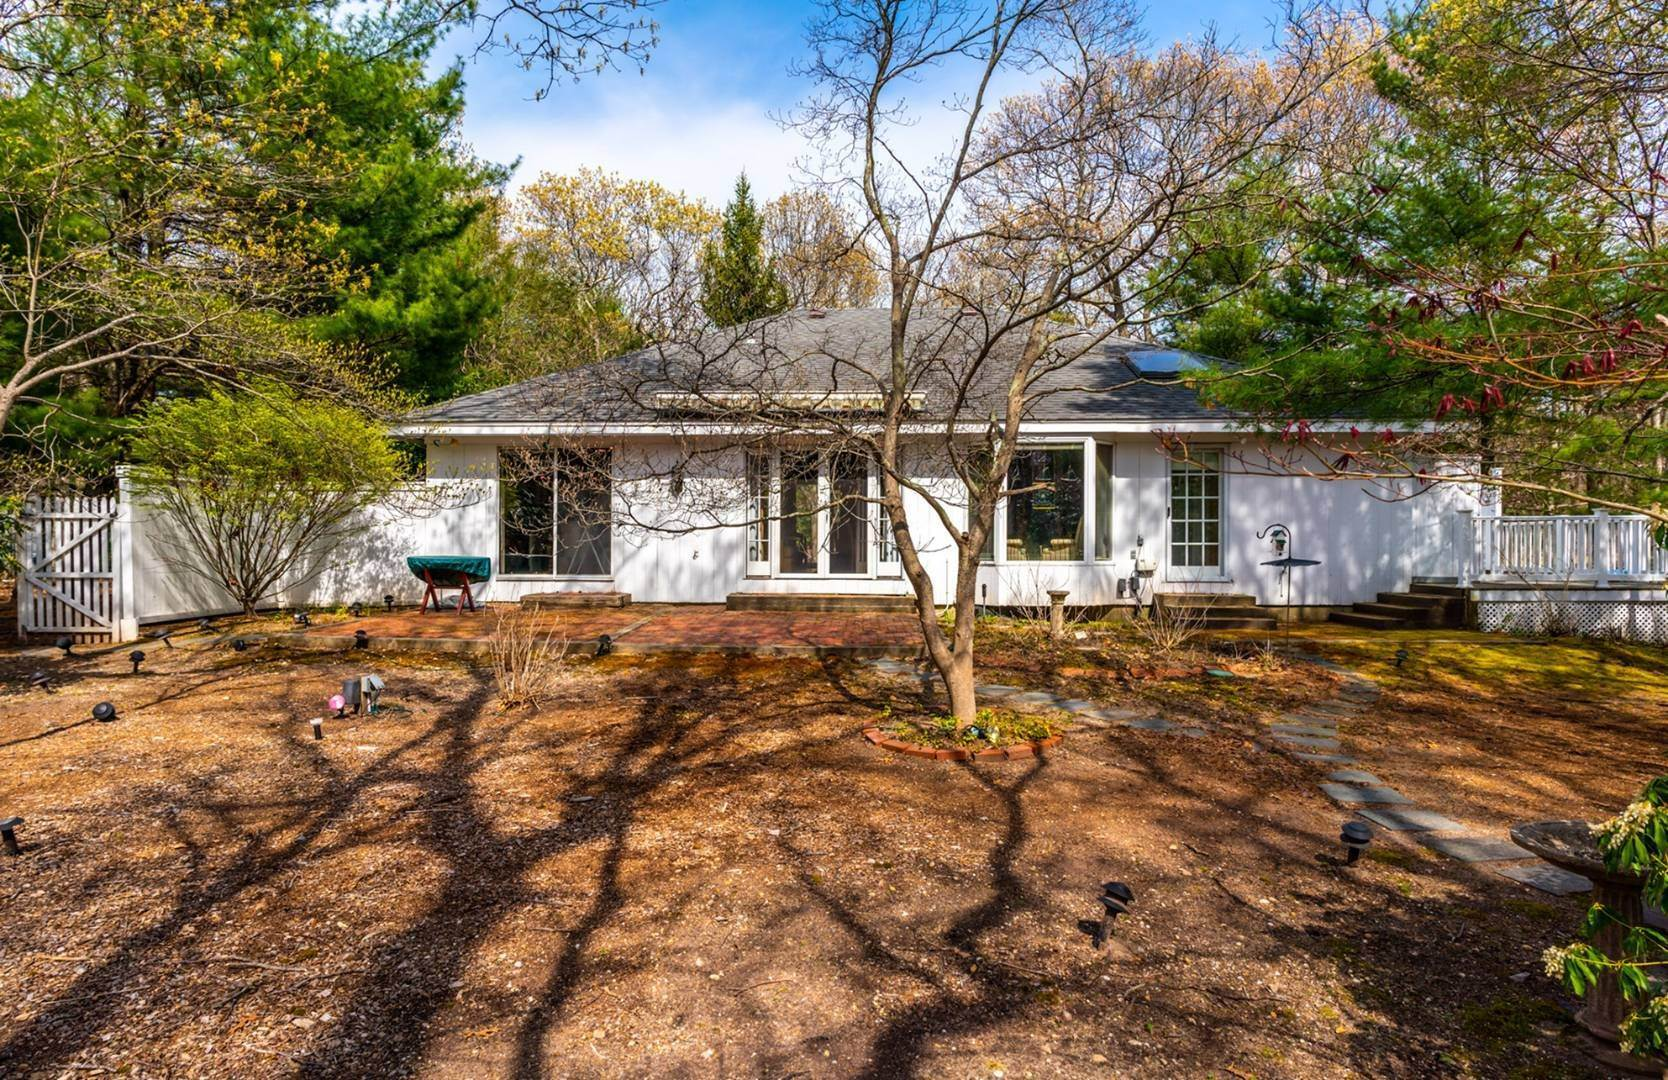 2. Single Family Home for Sale at Investment Opportunity With Water Access 9 Longboat Ln, East Hampton, NY 11937